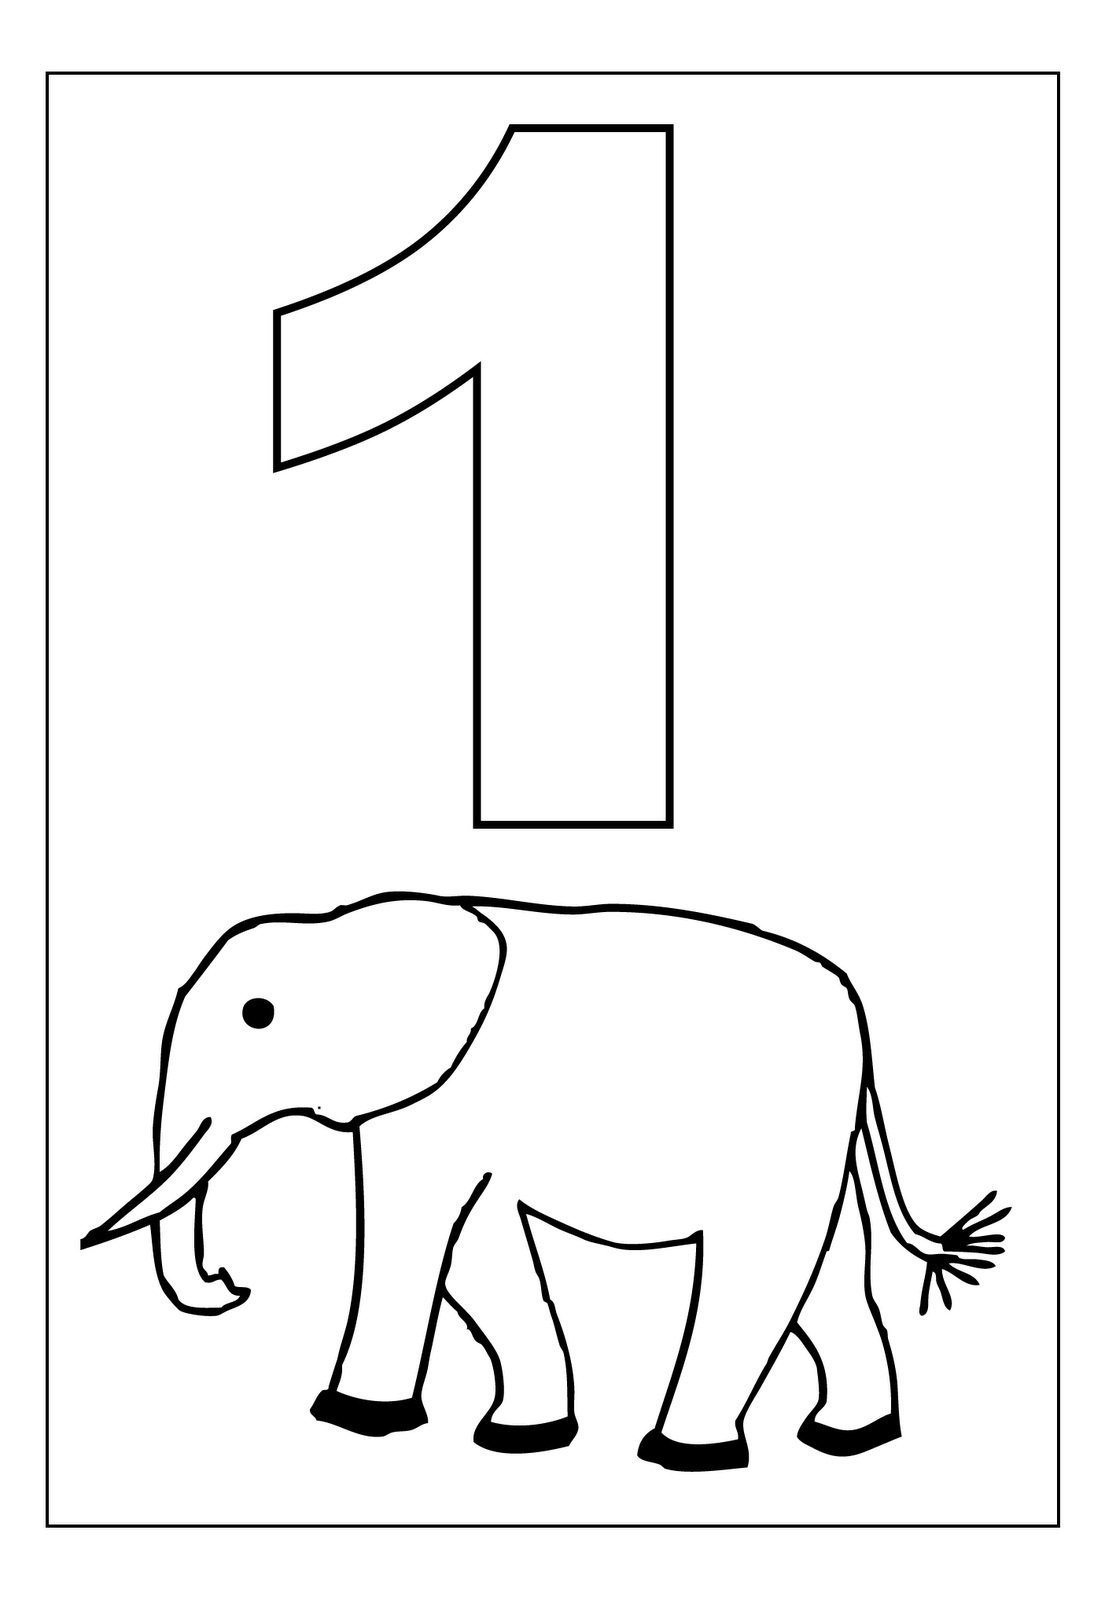 Free printable number coloring pages for kids for Number one coloring page